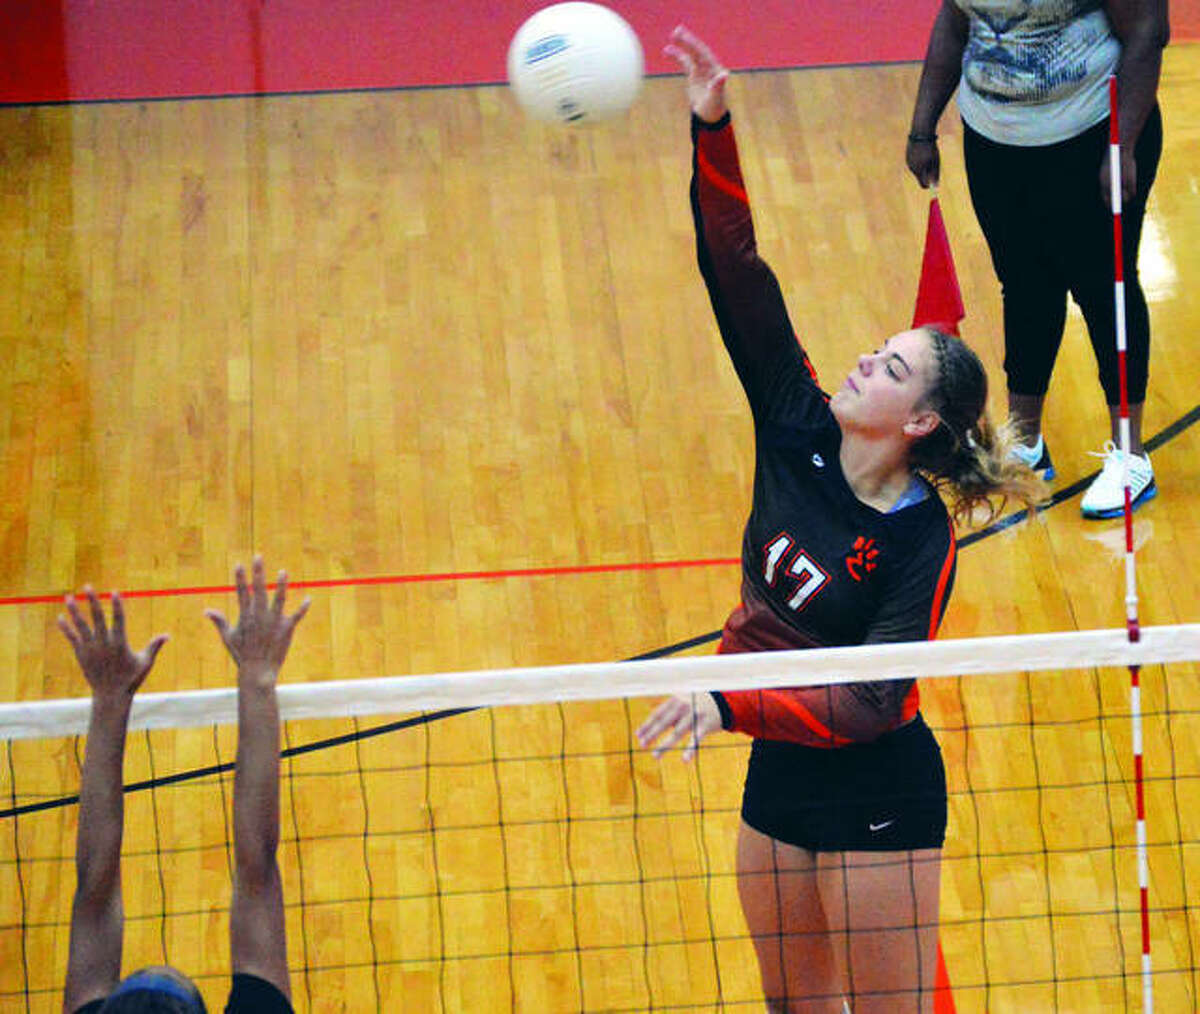 A multiple All-State and All-Southwestern Conference selection, the 6-0 Rachel Pranger is the program's only player with at least 1,000 kills and 1,000 digs.